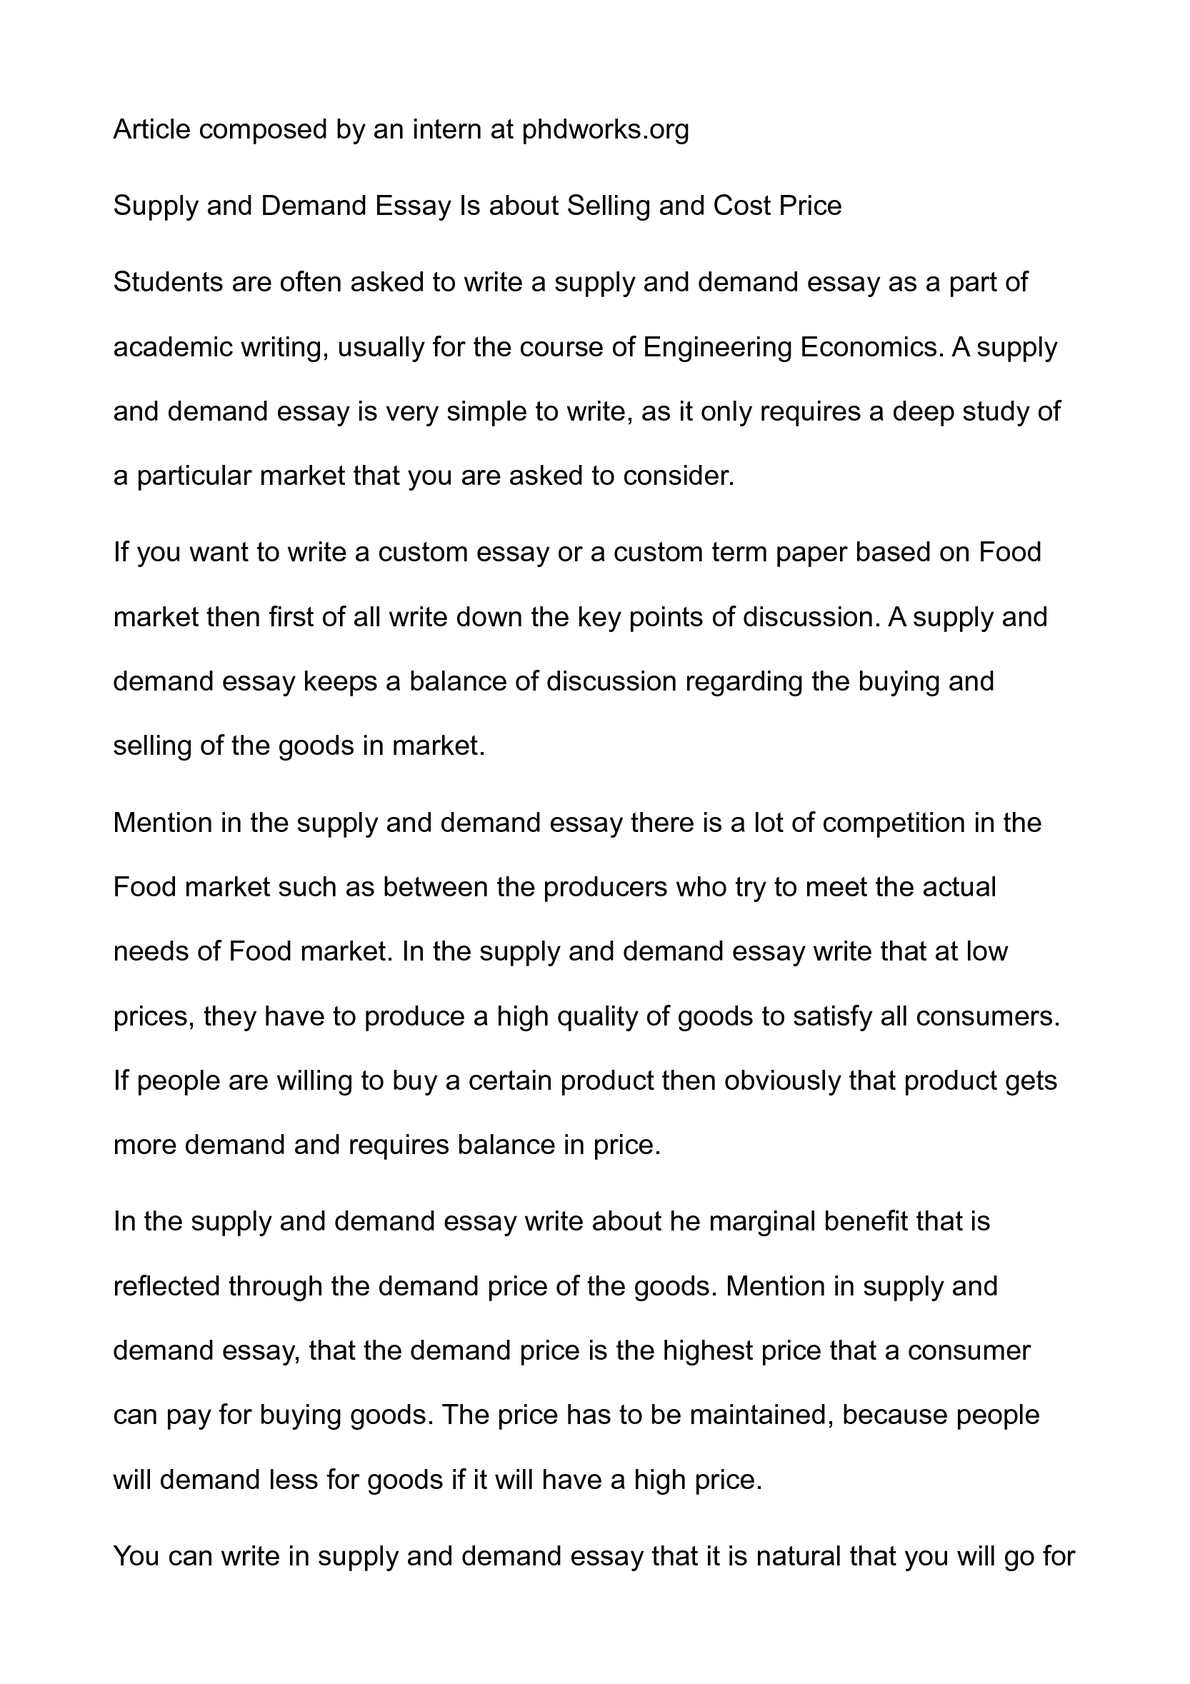 001 Essay Supply P1 Shocking Questions On Chain Management For And Demand Essaysupply Sign Up Full